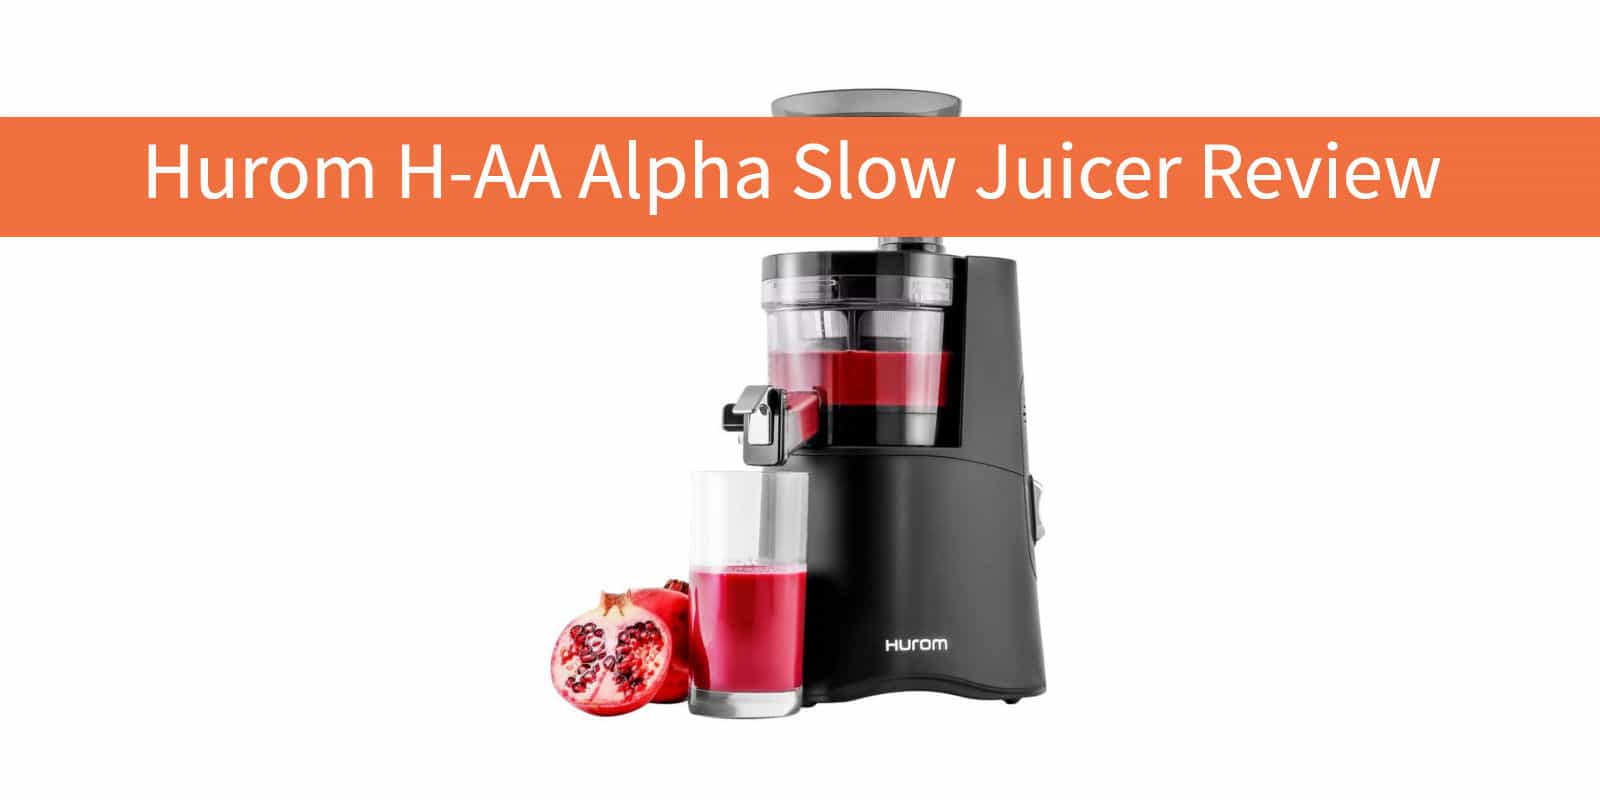 Hurom Slow Juicer H Aa : Hurom H-AA Alpha Slow Juicer Review (2018) vegByte